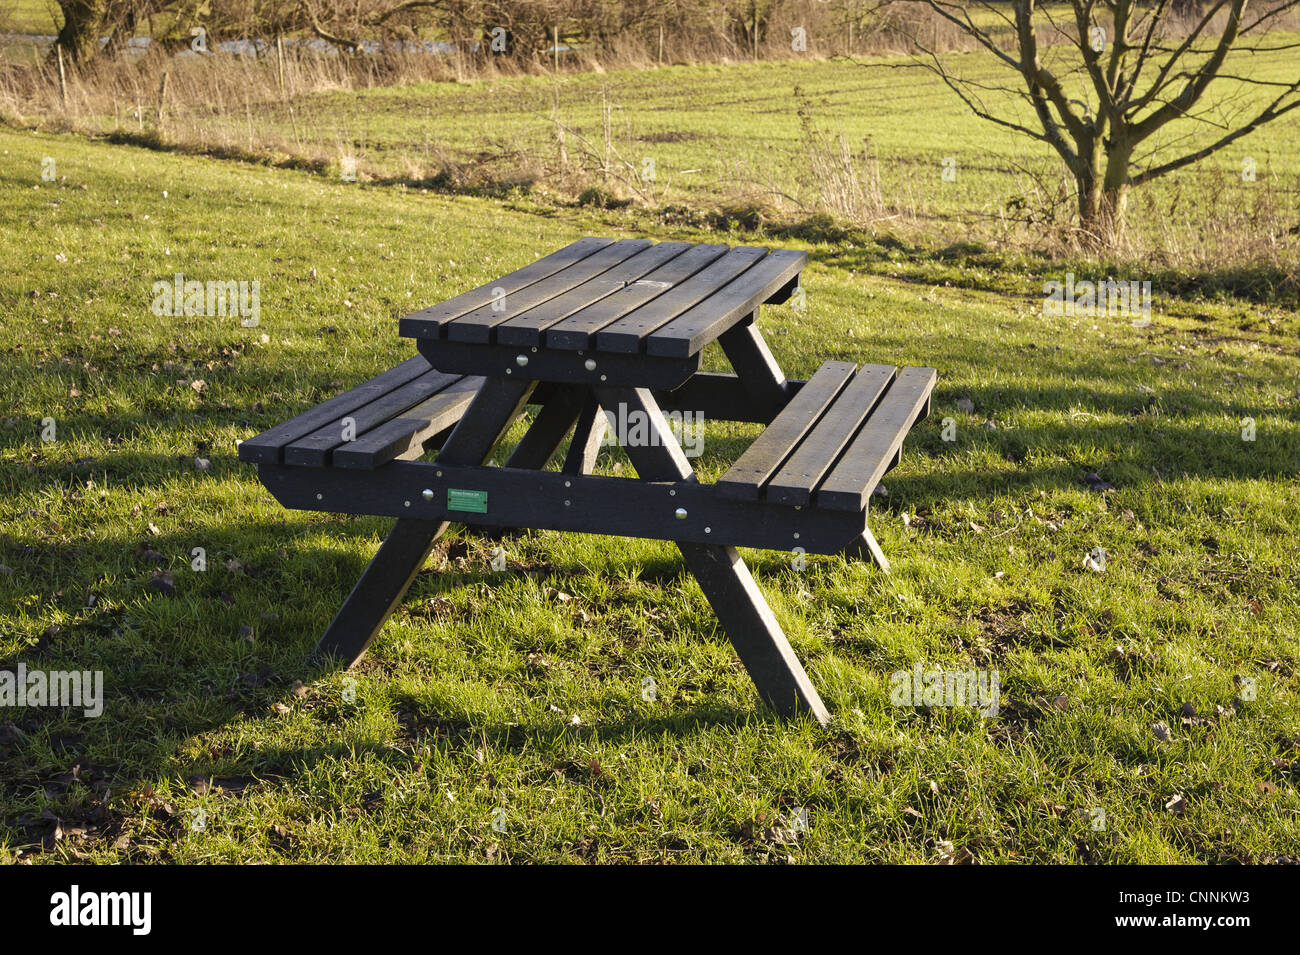 Outdoor plastic furniture made from recycled plastic bottles stock photo royalty free image Furniture made from recycled plastic